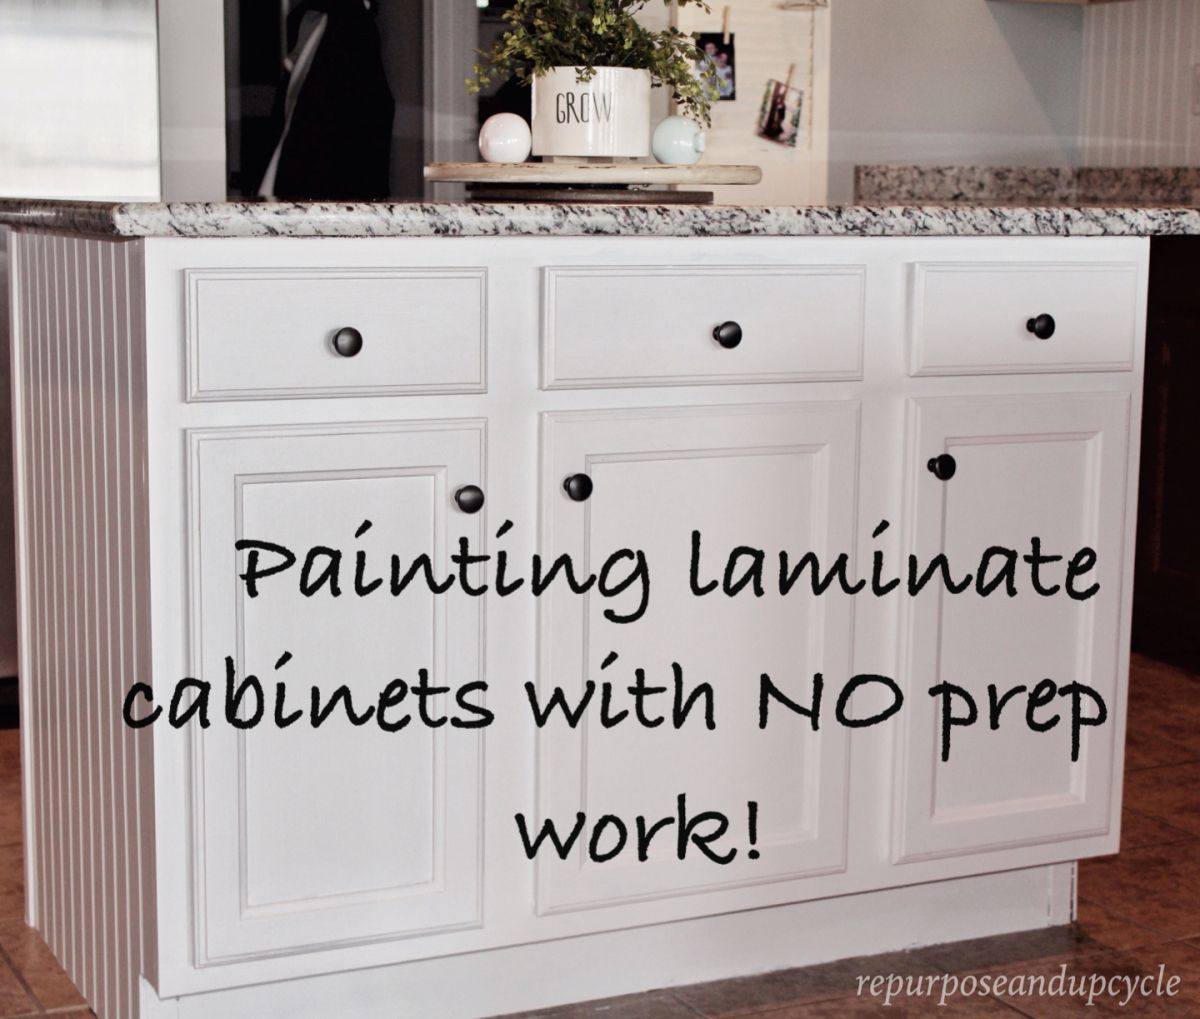 Painting Laminate Cabinets With No Prep Work Repurpose And Upcycle Kitchen Pinterest